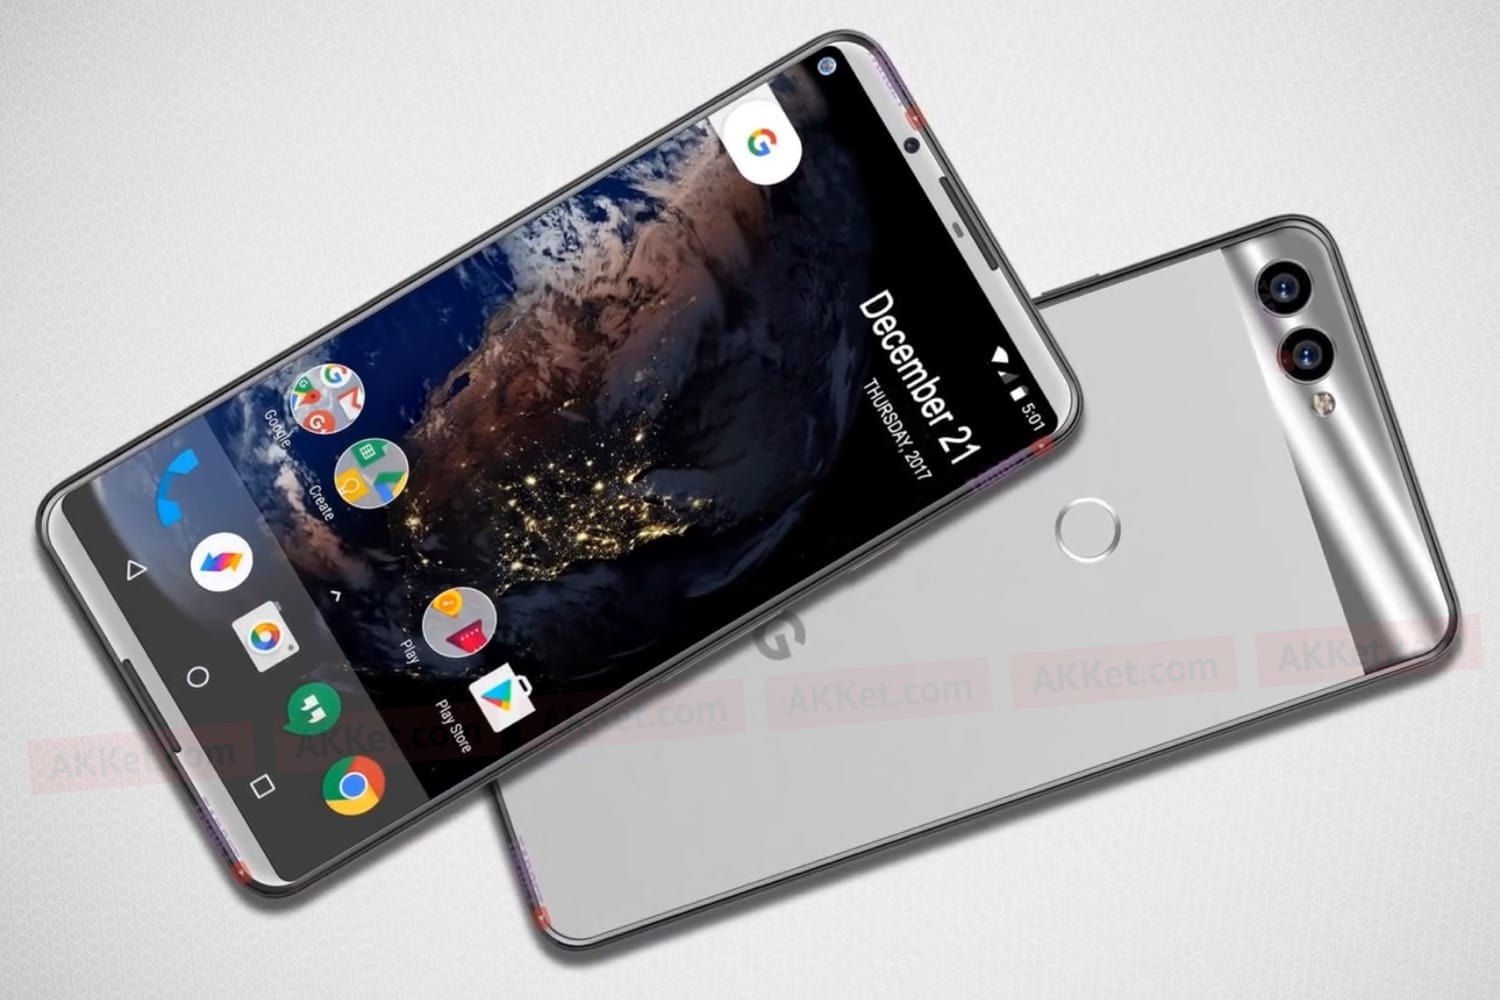 After the release of the Google Pixel 2 and Google Pixel 2 XL work is now well underway on a trio of Pixel 3 phones